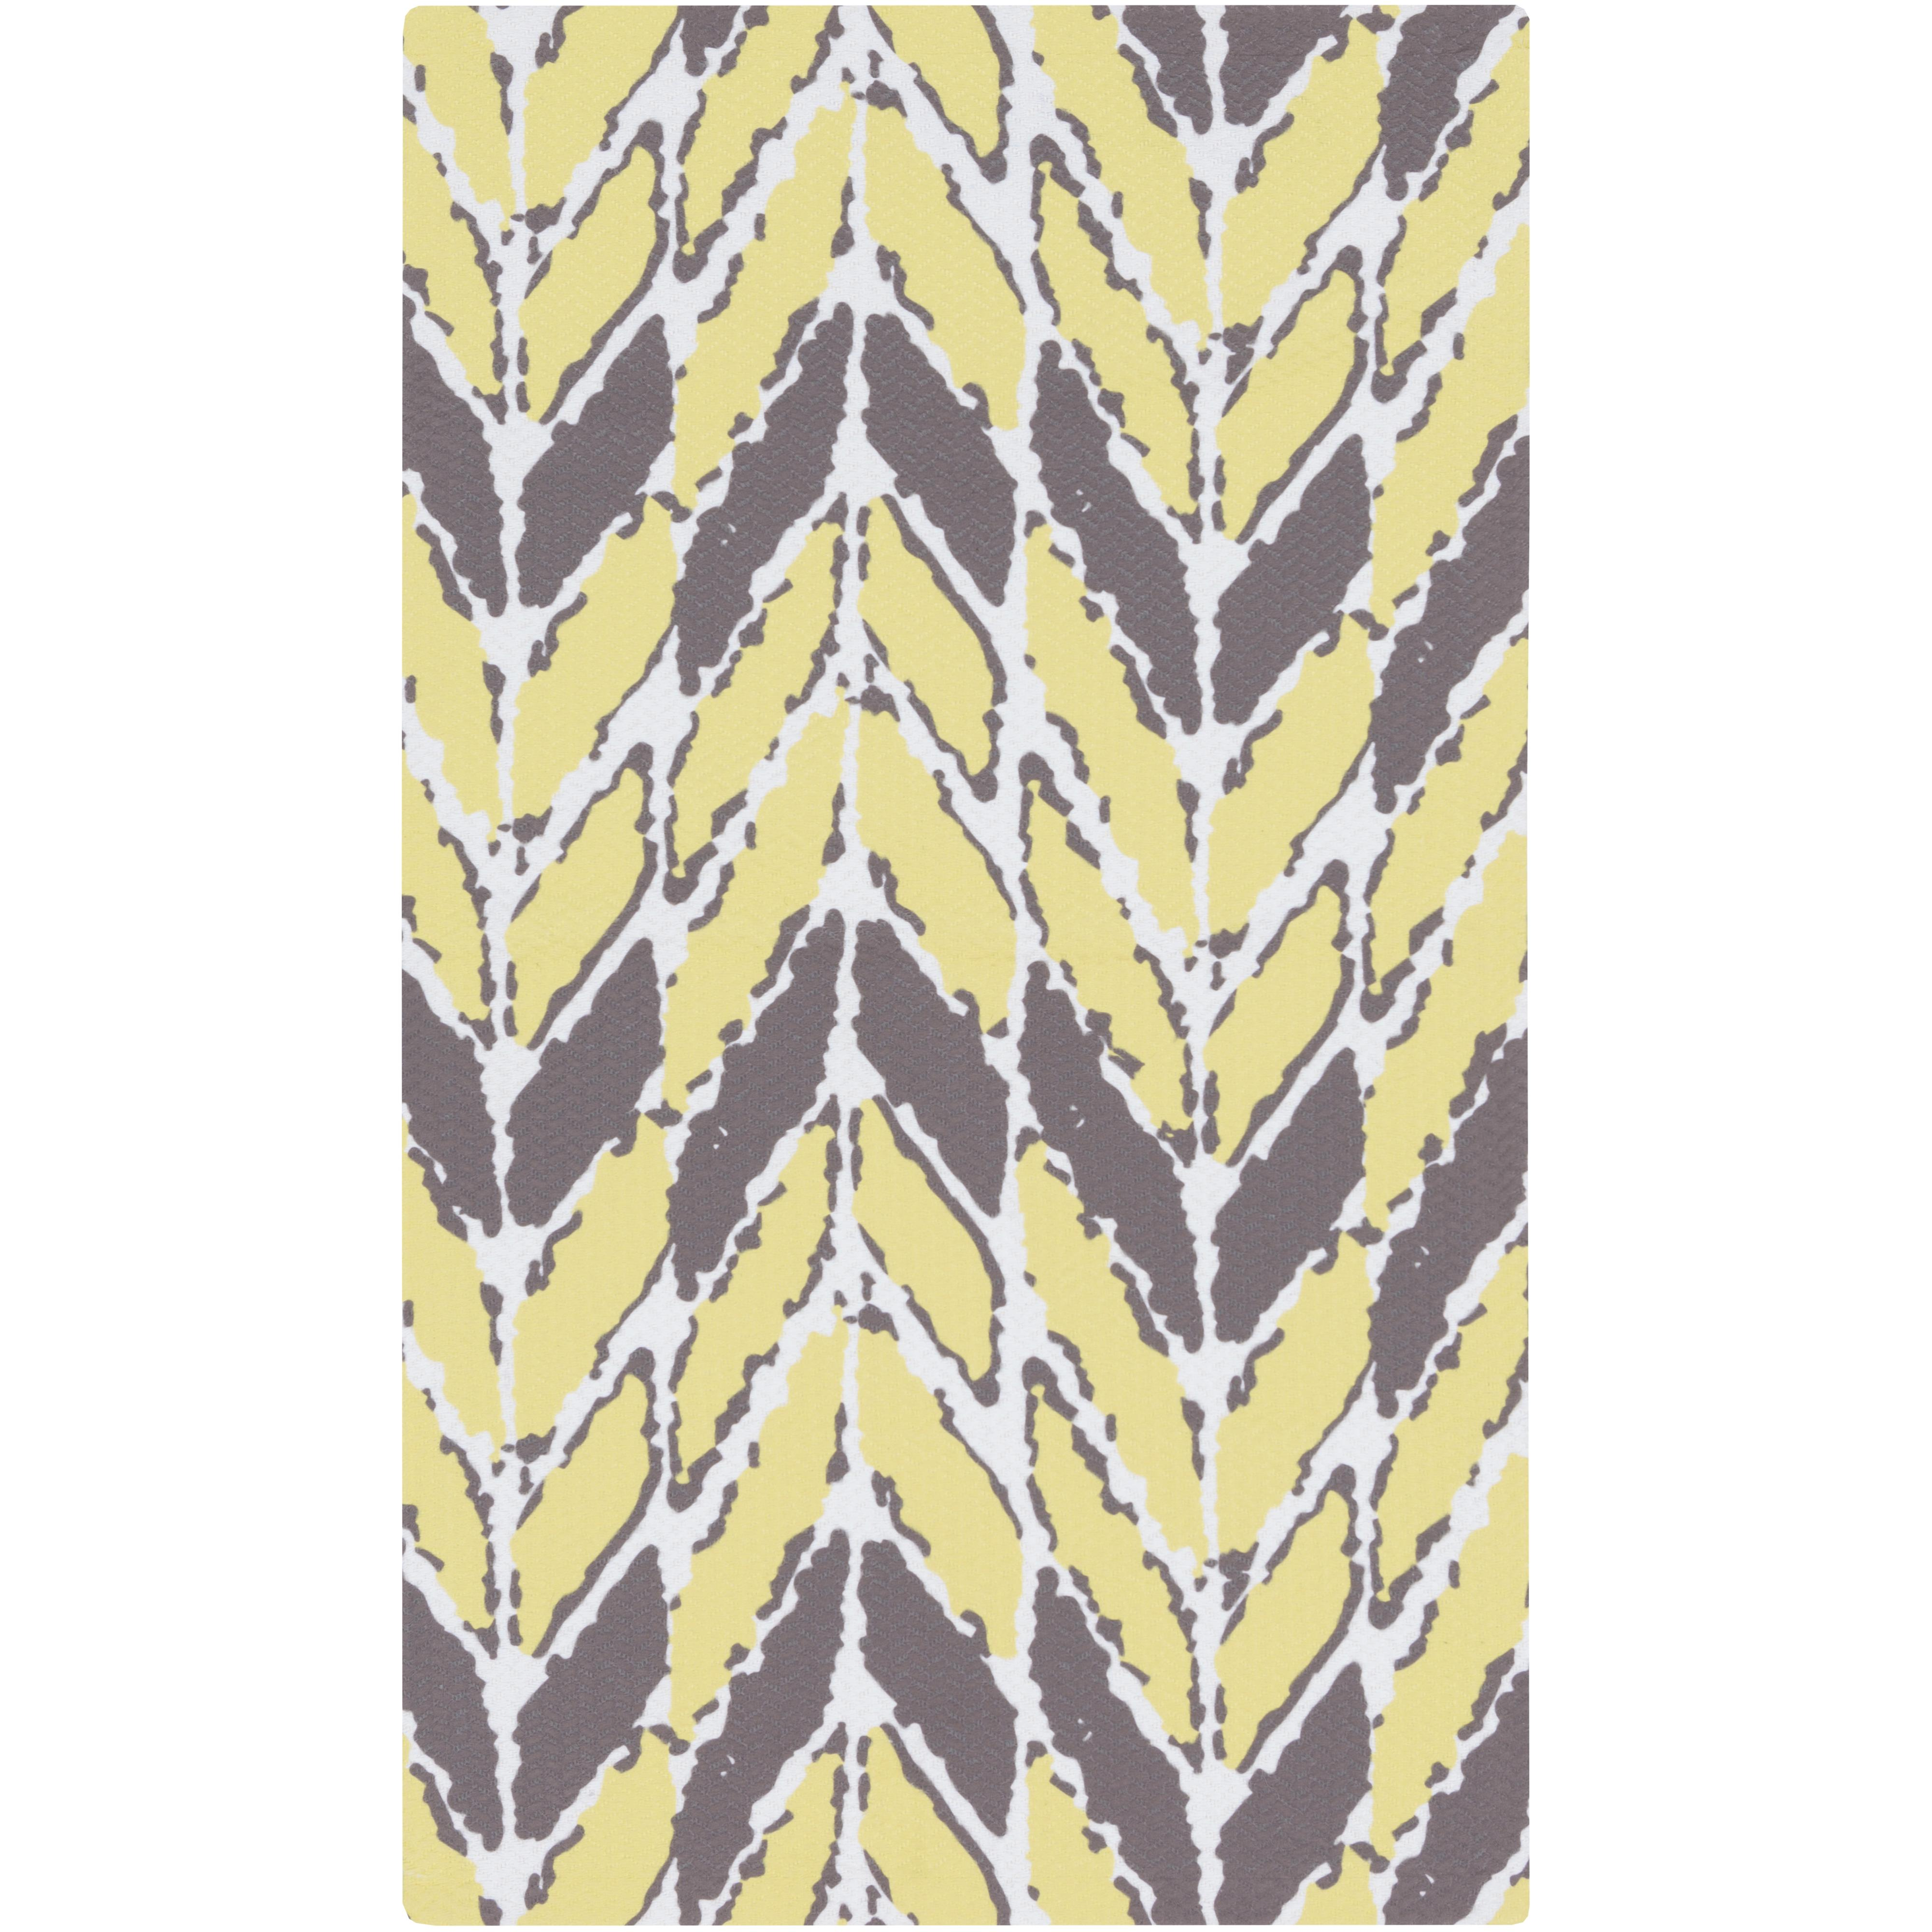 Surya Rugs Cape cod 2' x 3' - Item Number: CCD1005-23